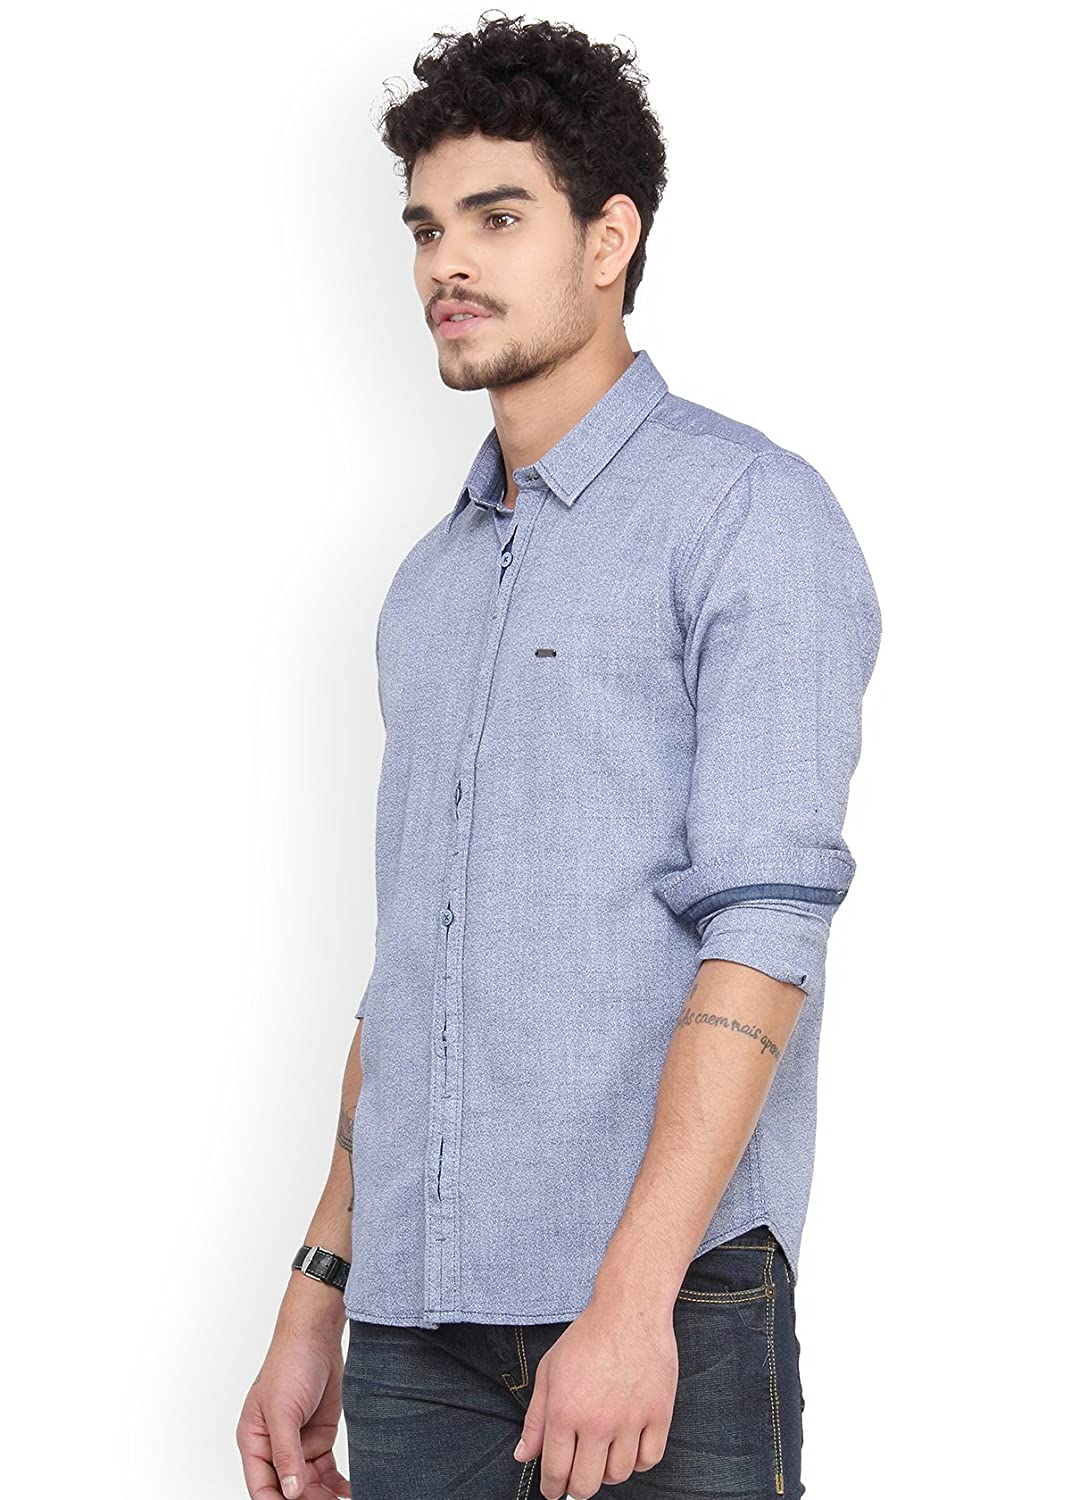 b2aabca7884 Derby Jeans Community Navy Cotton Solid Slim Fit Casual Men Shirts:  Amazon.in: Clothing & Accessories